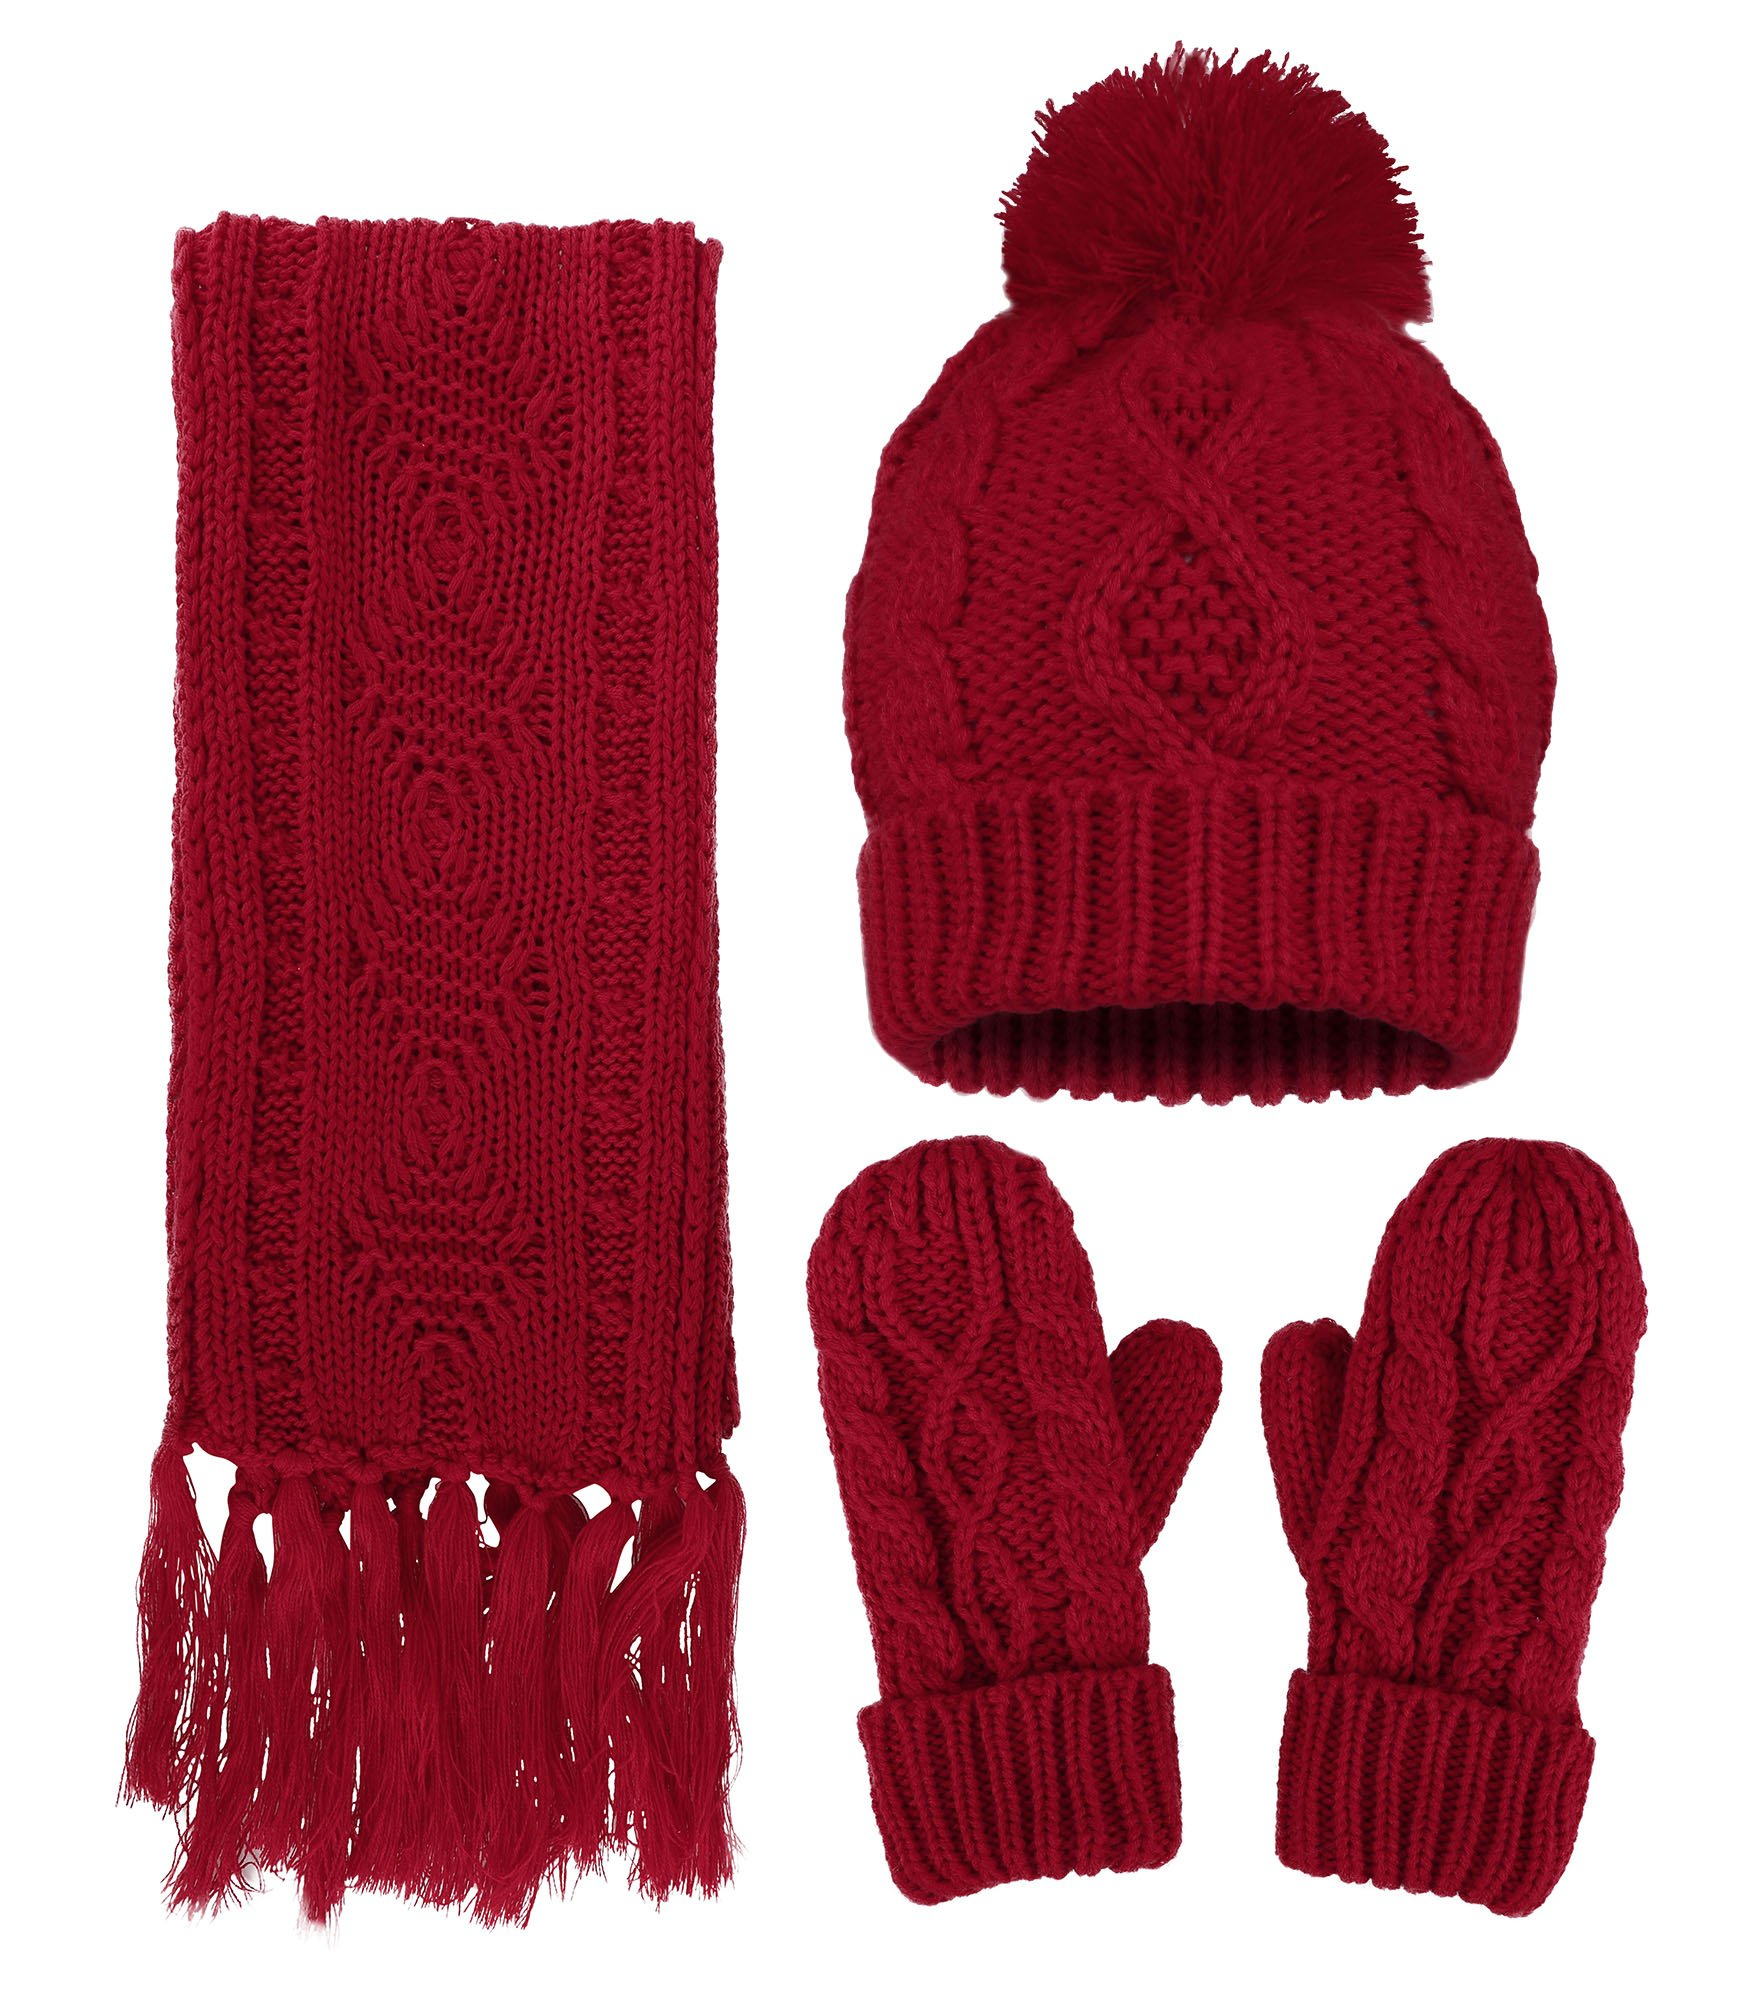 ANDORRA - 3 in 1 - Soft Warm Thick Cable Hat Scarf & Gloves Winter Set, Red by Andorra (Image #1)